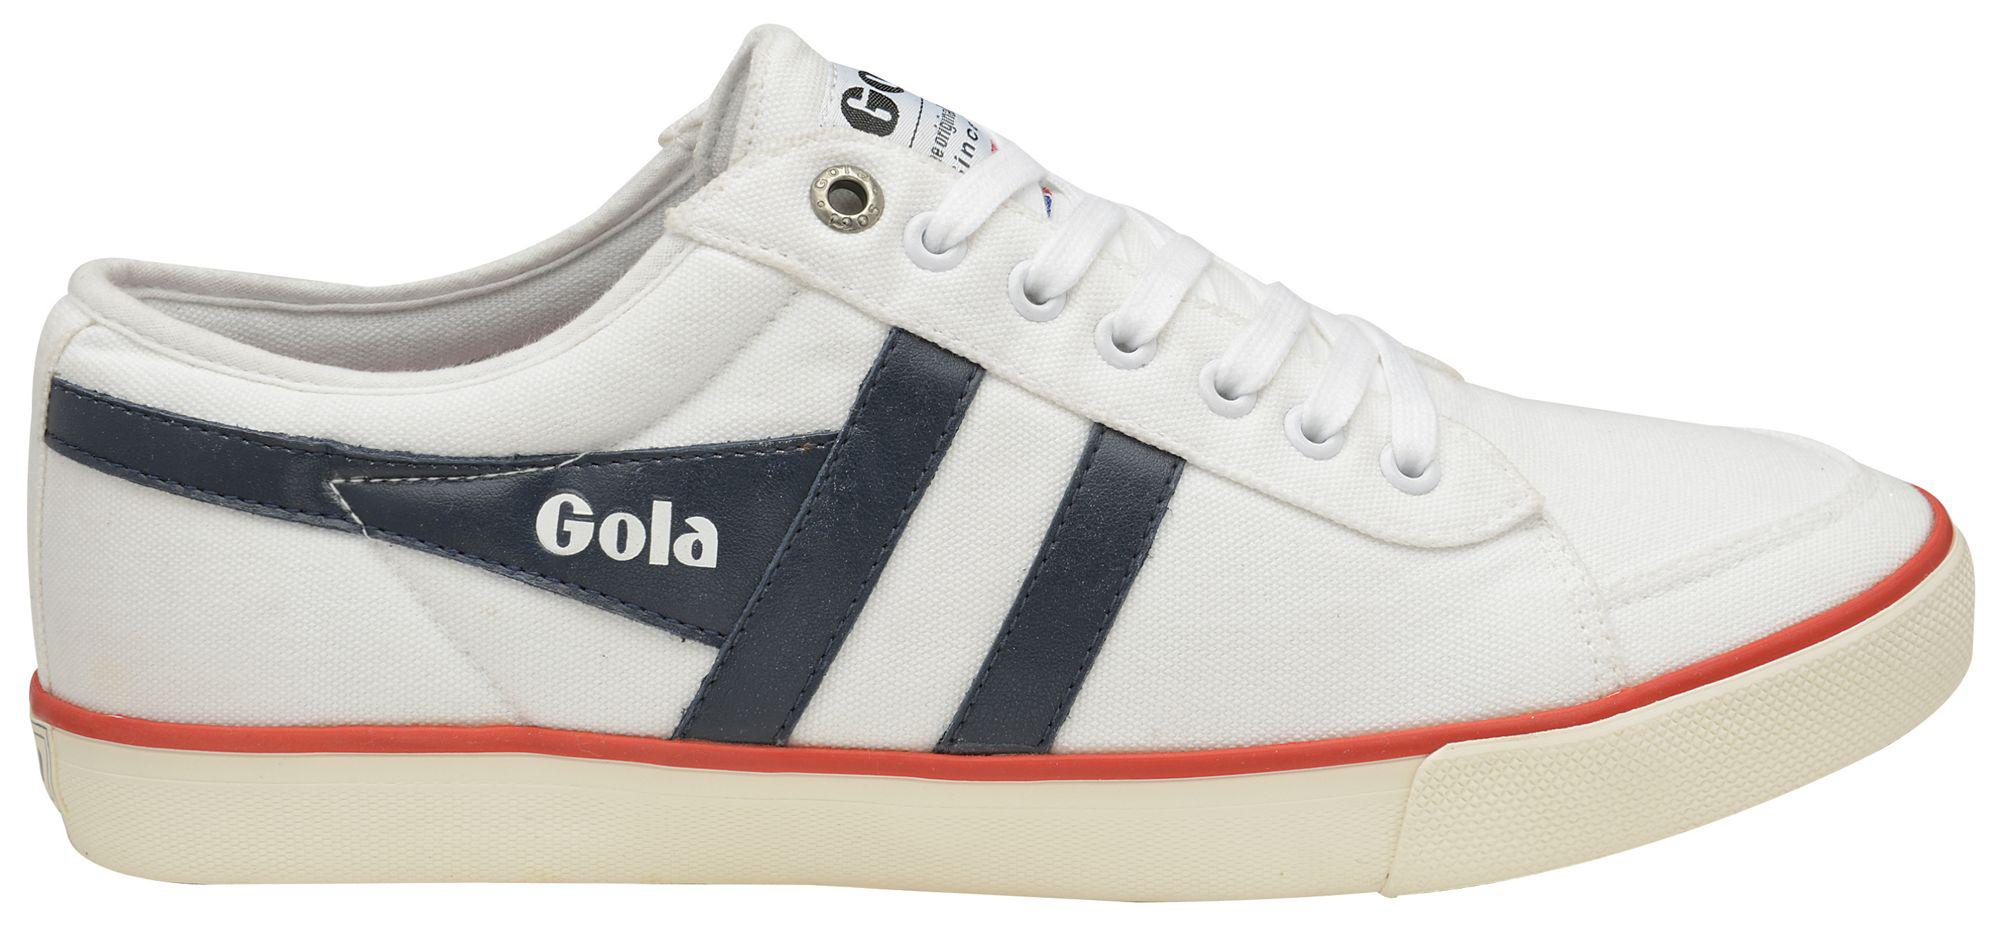 White 'Comet' mens plimsolls sale cheapest price buy cheap big discount cheap sale footlocker Nrwninp